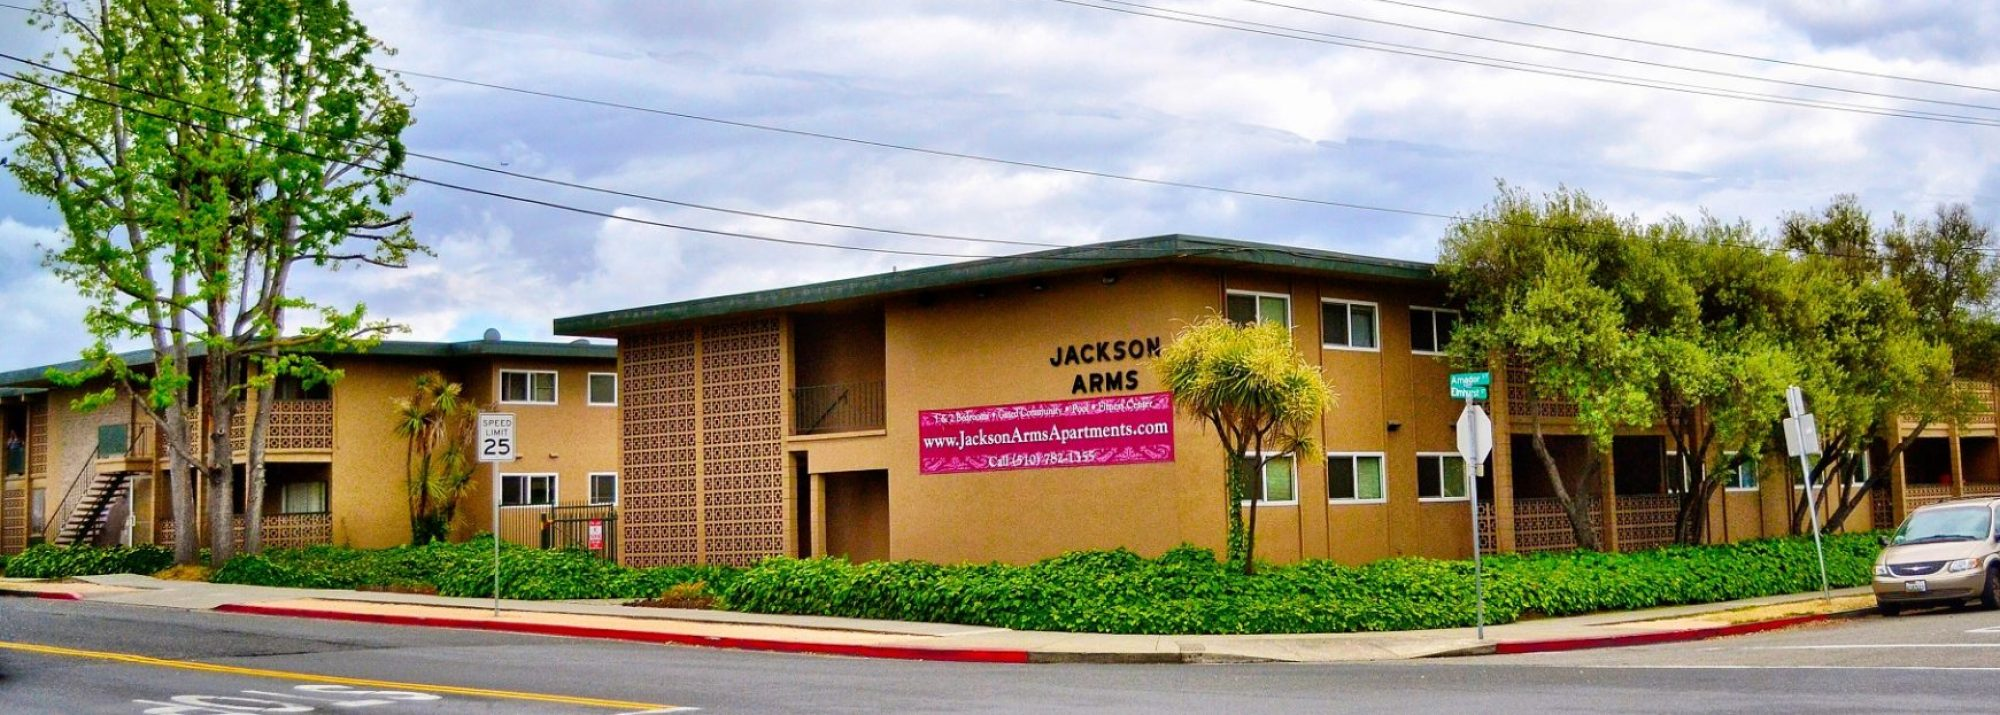 Jackson Arms Apartments